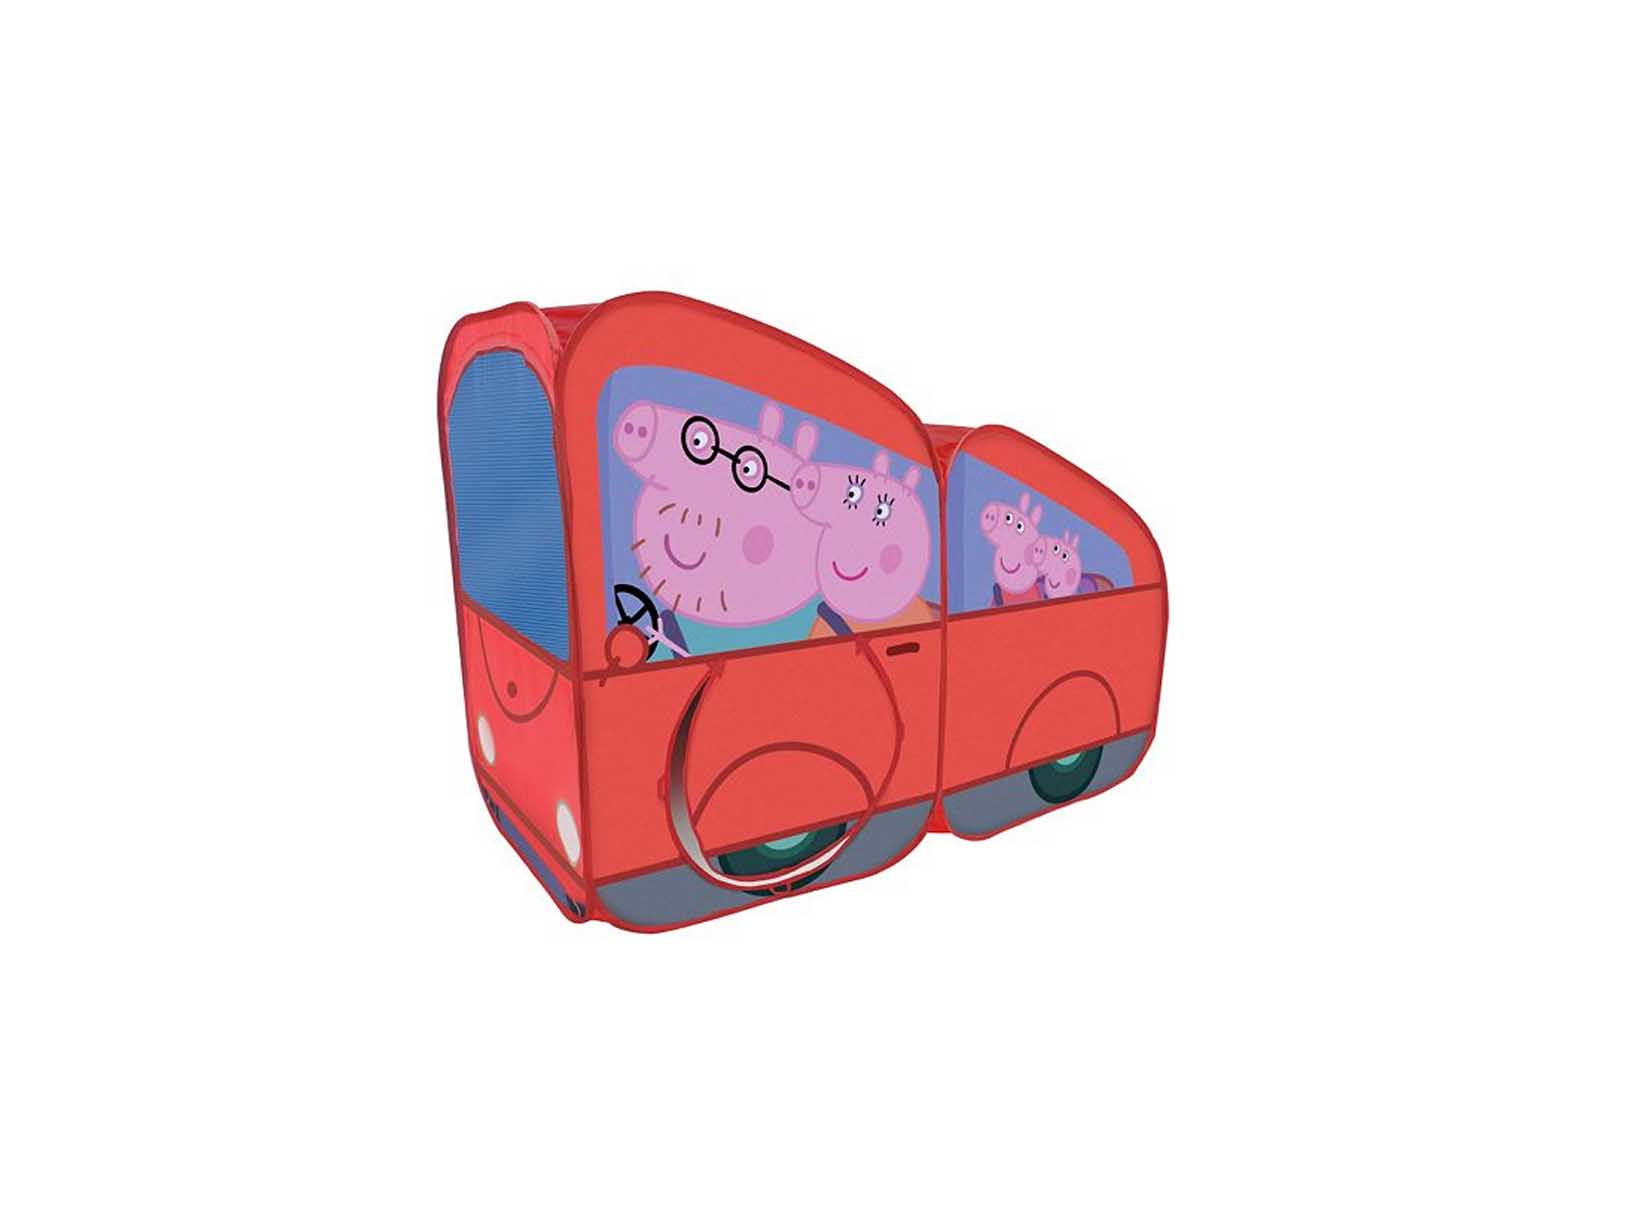 Peppa Pig Family Car Play Tent for $10.49 at Kohlu0027s  sc 1 st  The Best Deals Club : car play tent - memphite.com